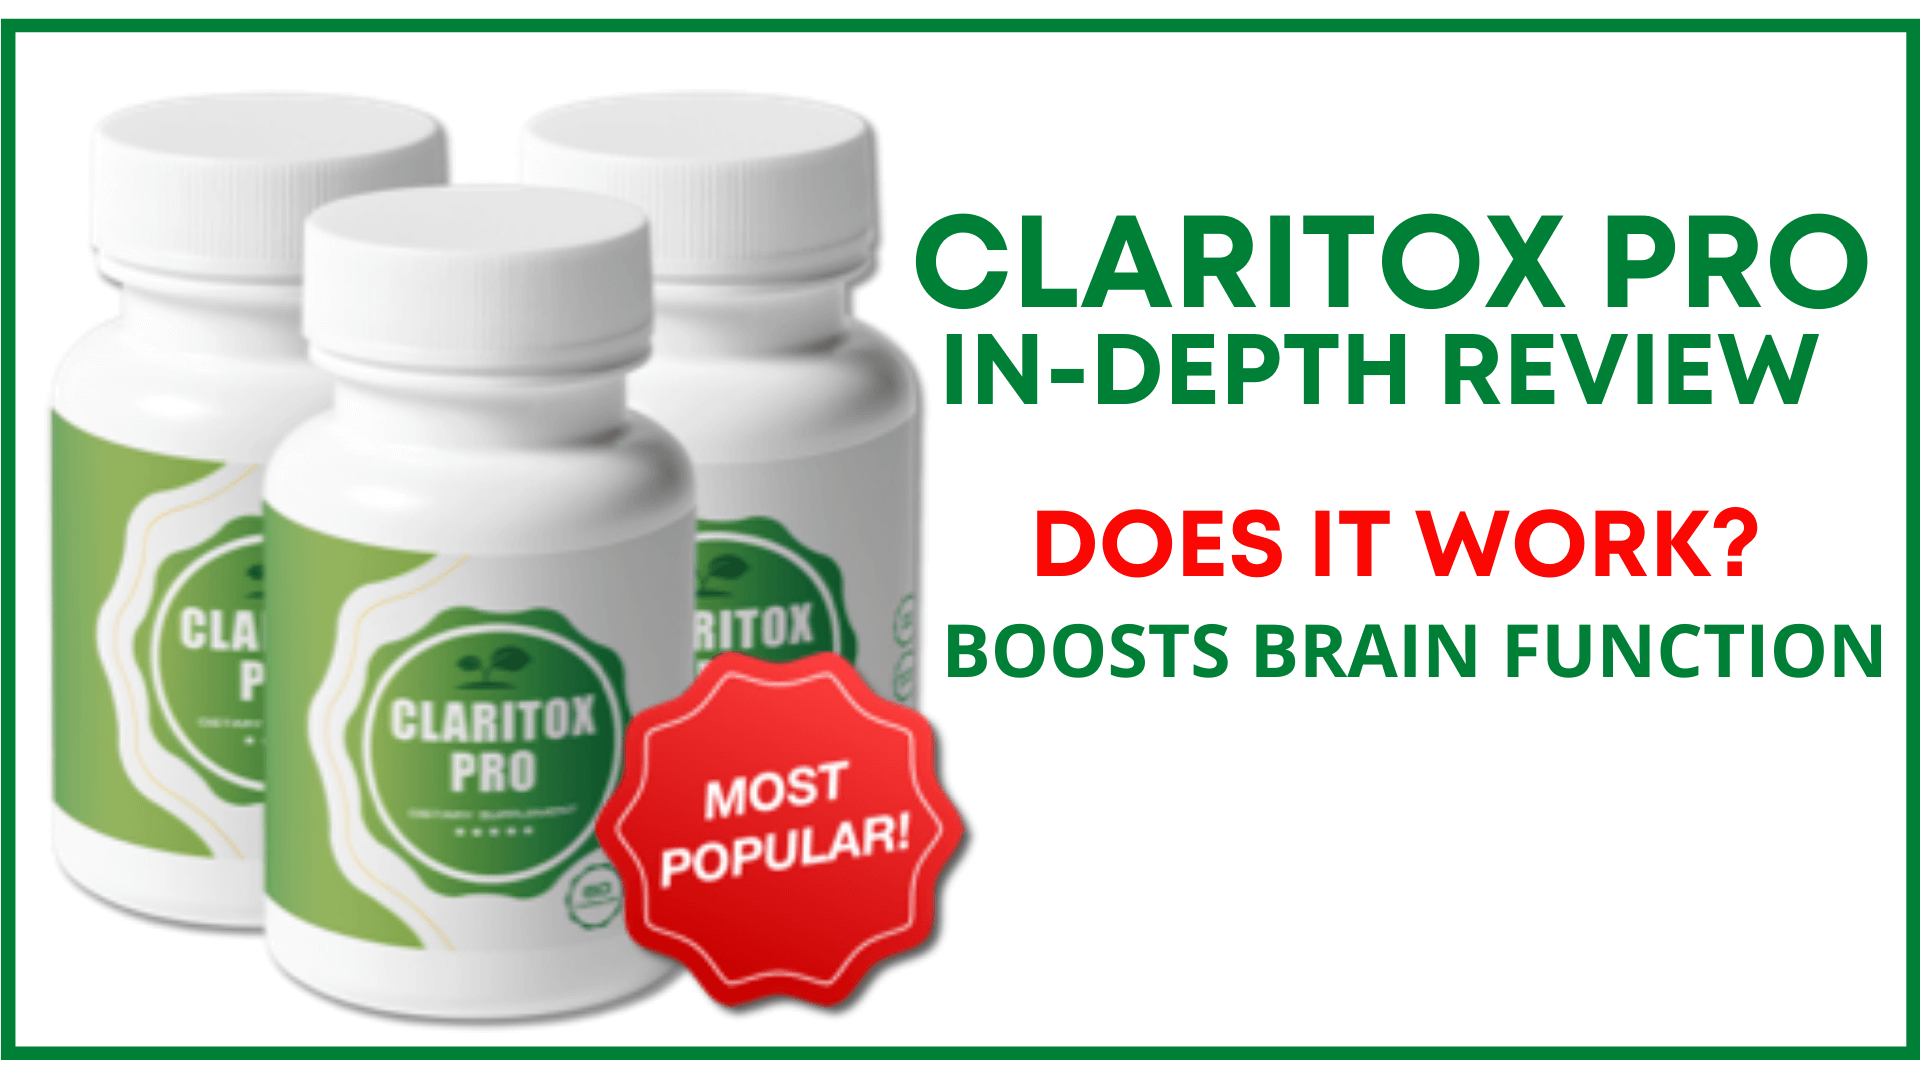 Fitweightlogy - Claritox Pro Reviews